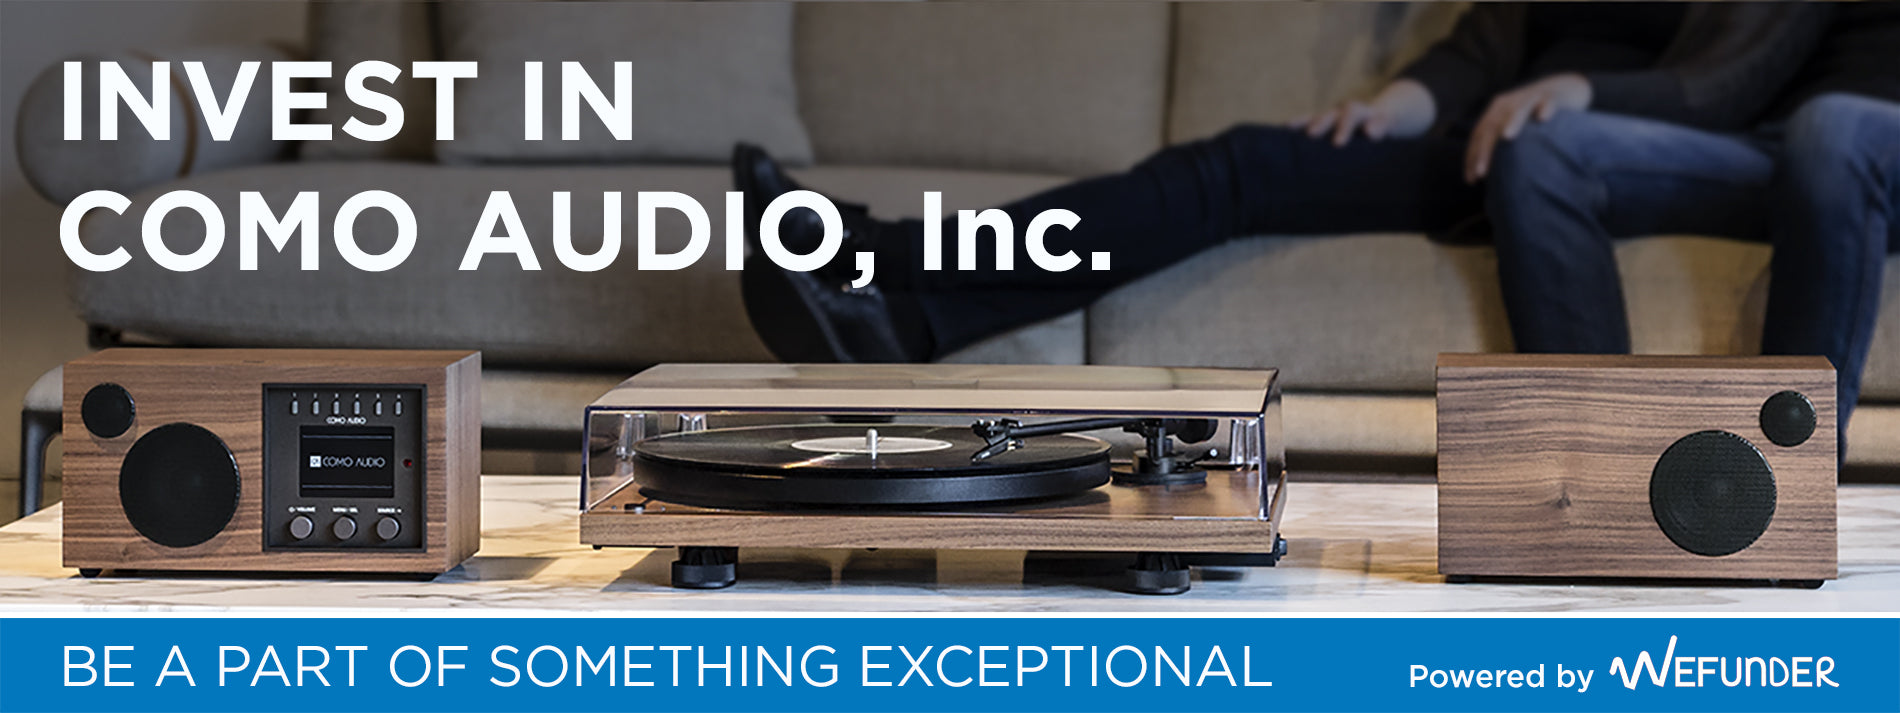 Invest in Como Audio, Inc!